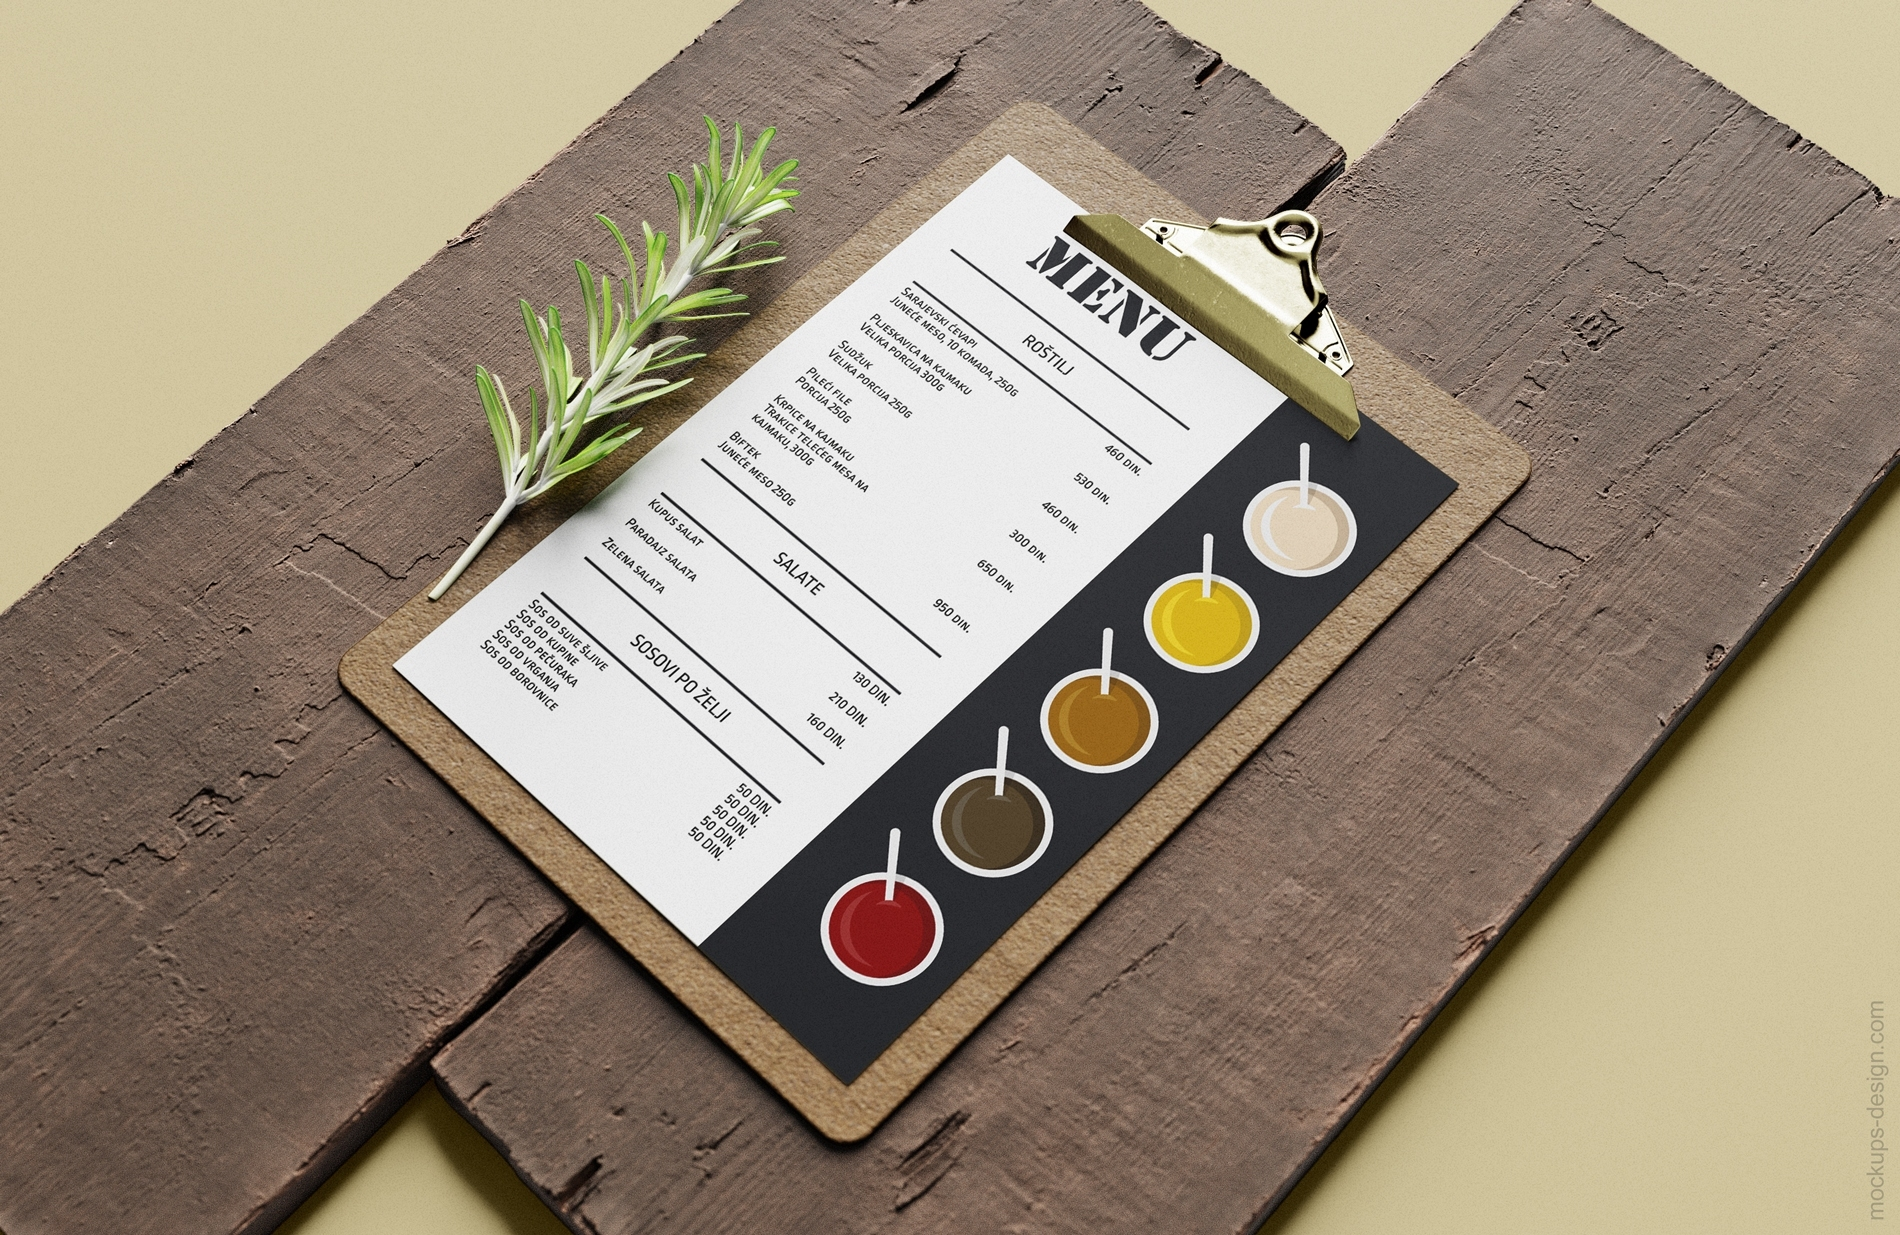 gallery/Gradska_menu_2